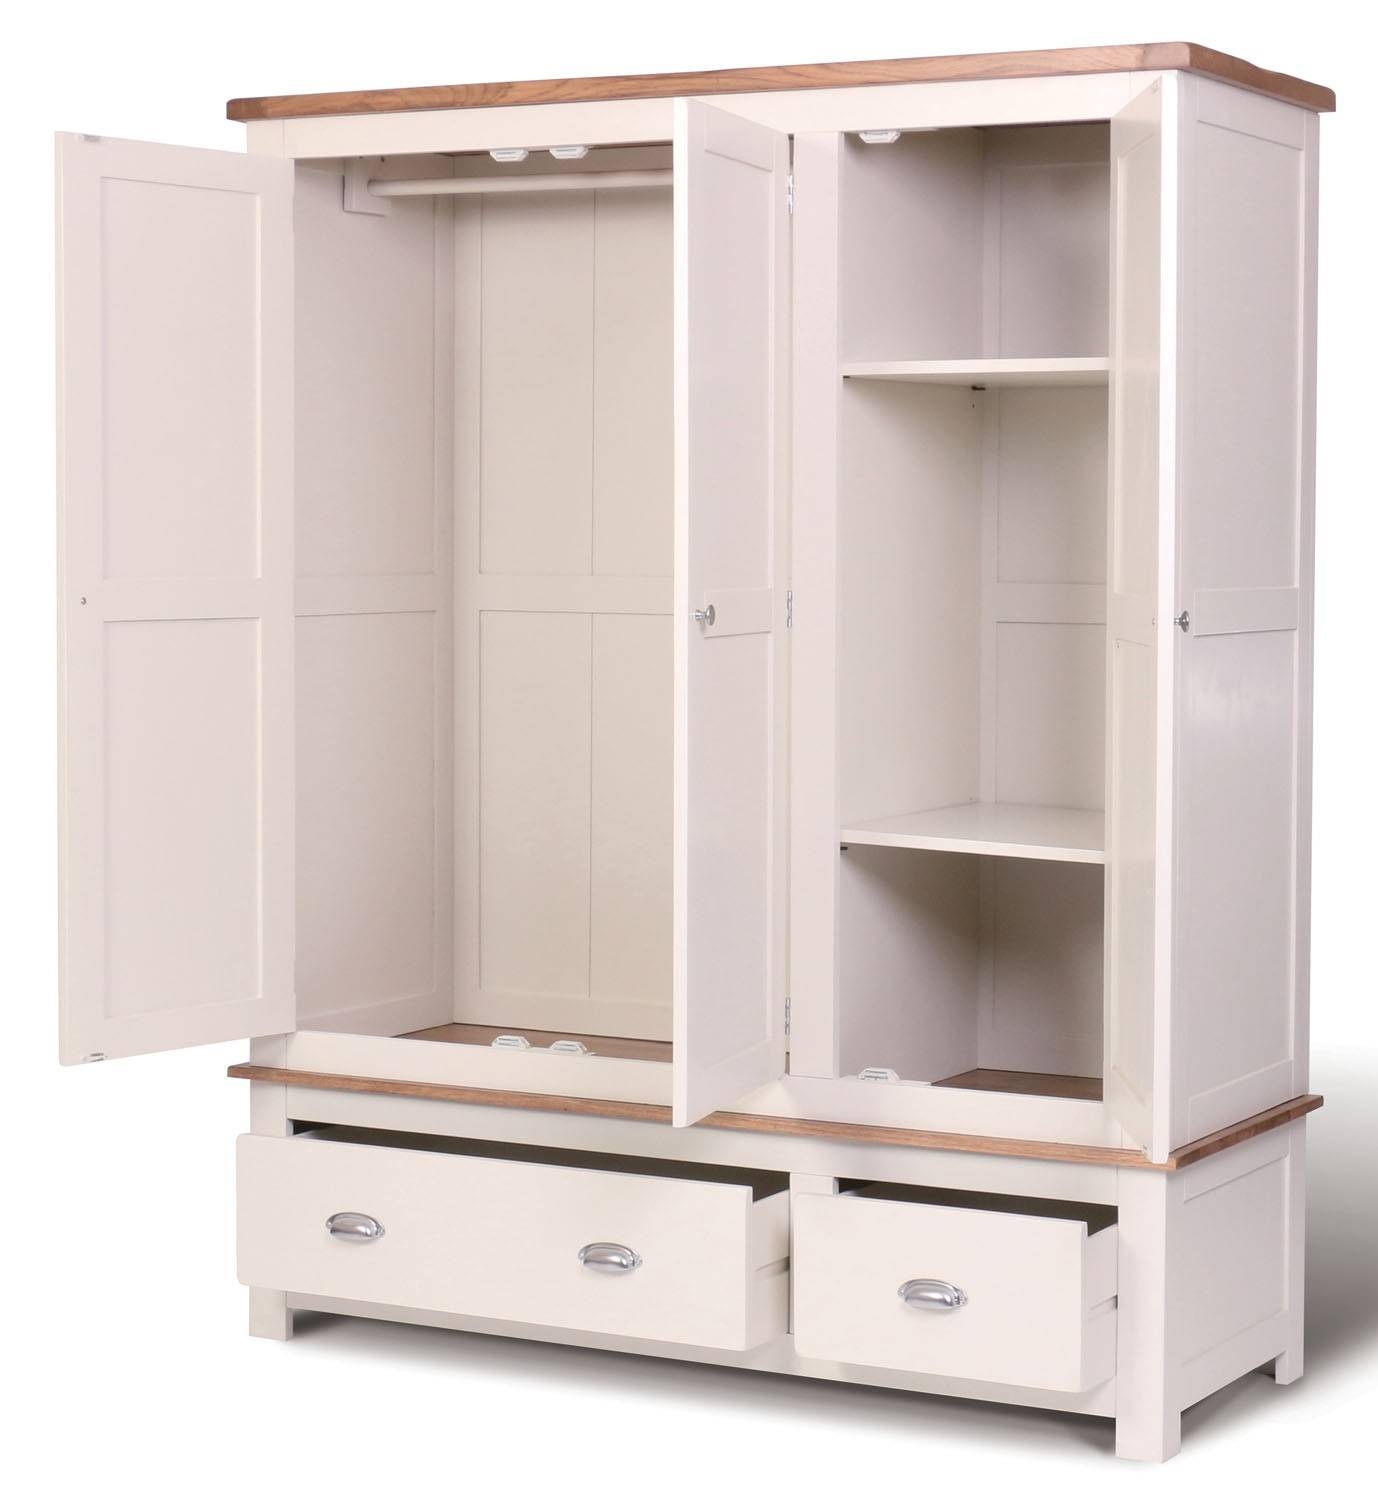 Ascot Triple Wardrobe With Drawers - Wardrobes - Bedroom | Hallowood throughout Wardrobe With Shelves and Drawers (Image 6 of 30)